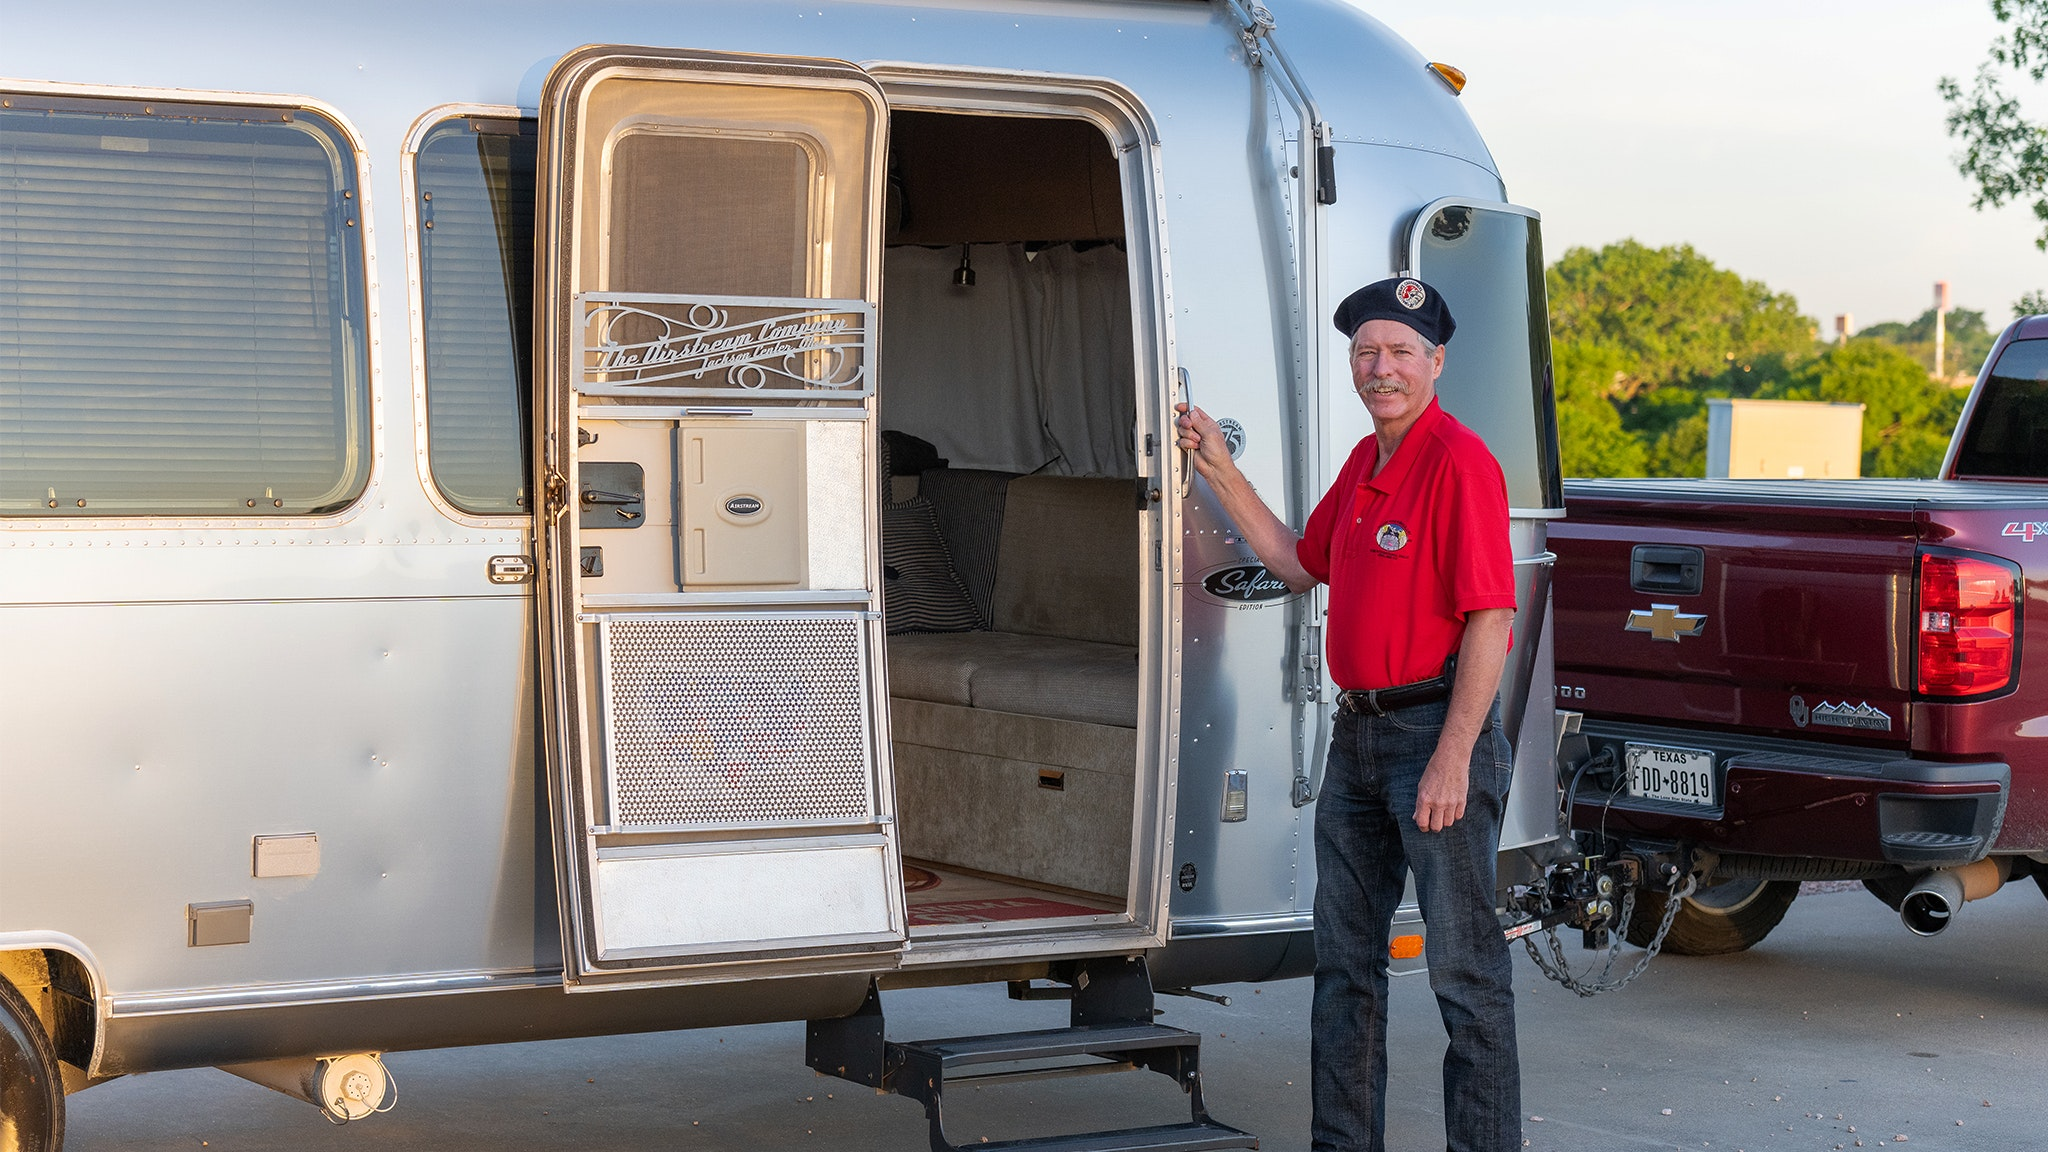 Andrew-Selking-Airstream-Club-Leader-Profile-Header